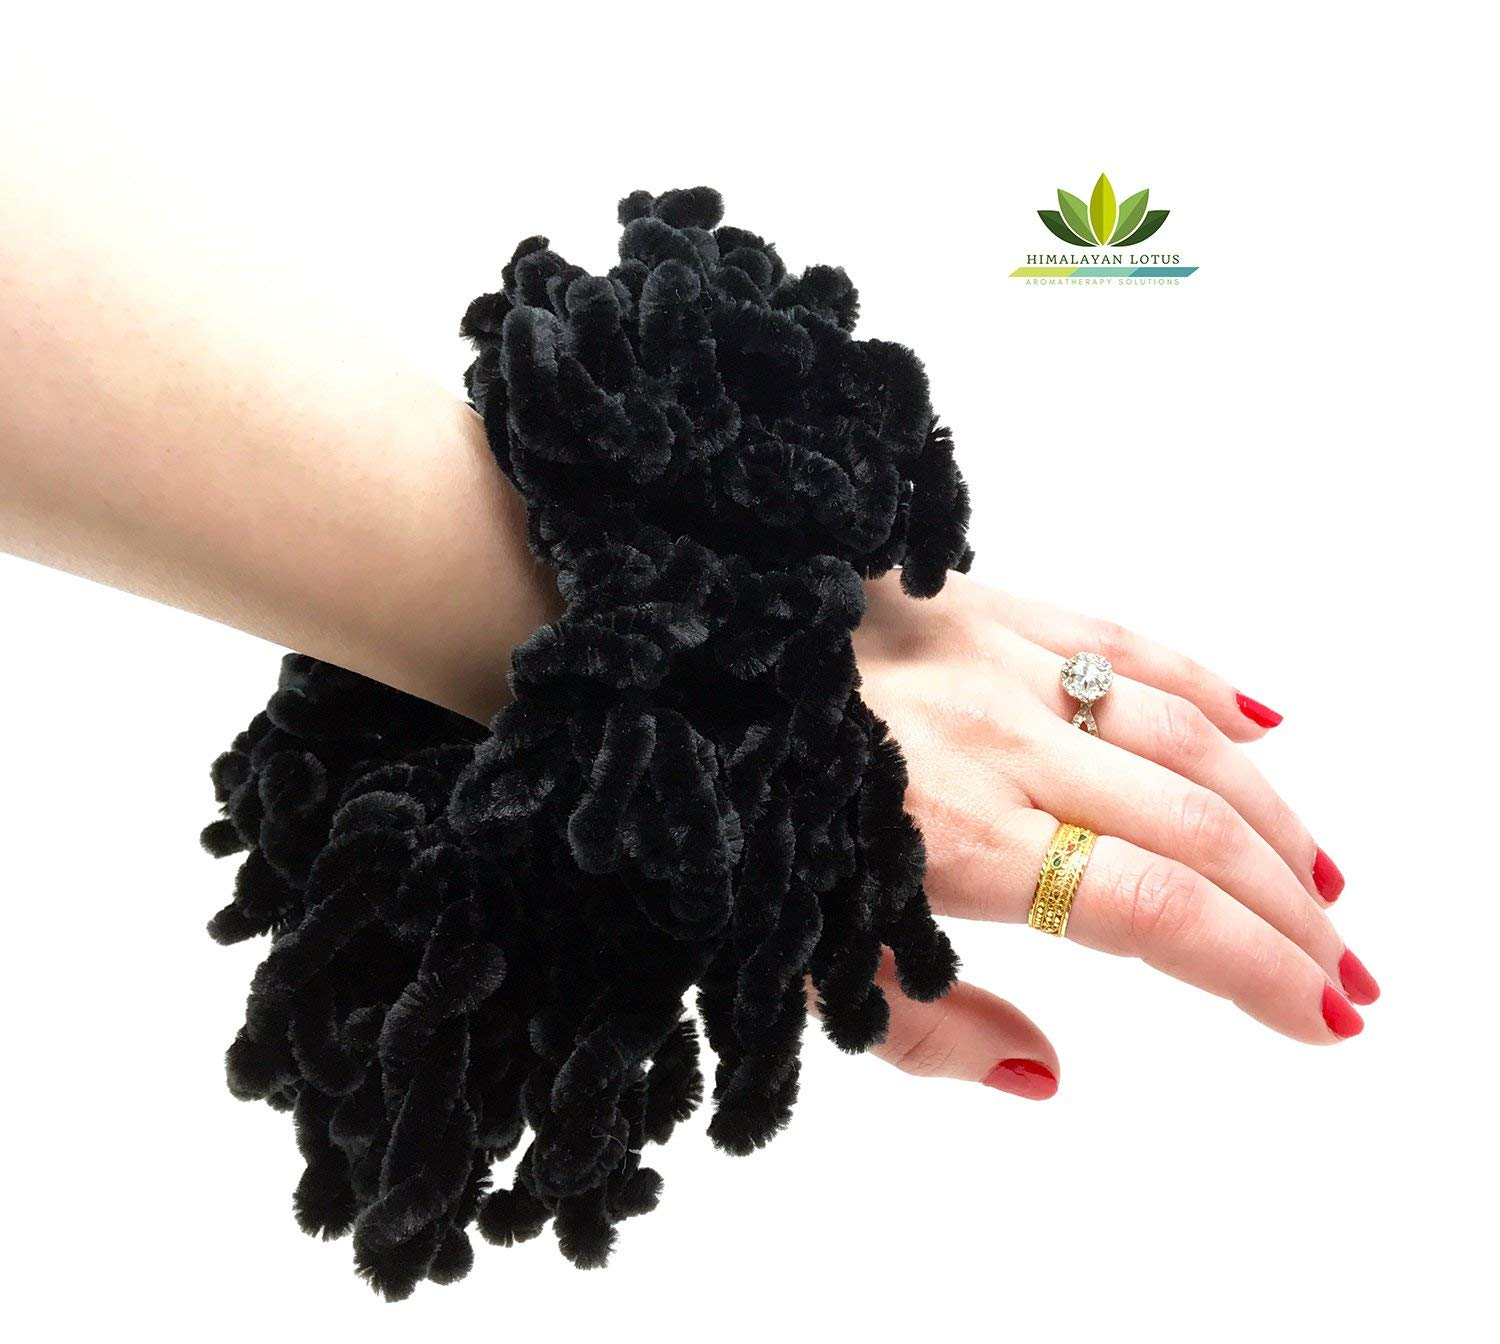 Volumising Hijab Scrunchie Plain Big Hair Ring Tie Bun Clip Hijab Scarf Volumizer Khaleeji - by Himalayan Lotus MSHSBFB1